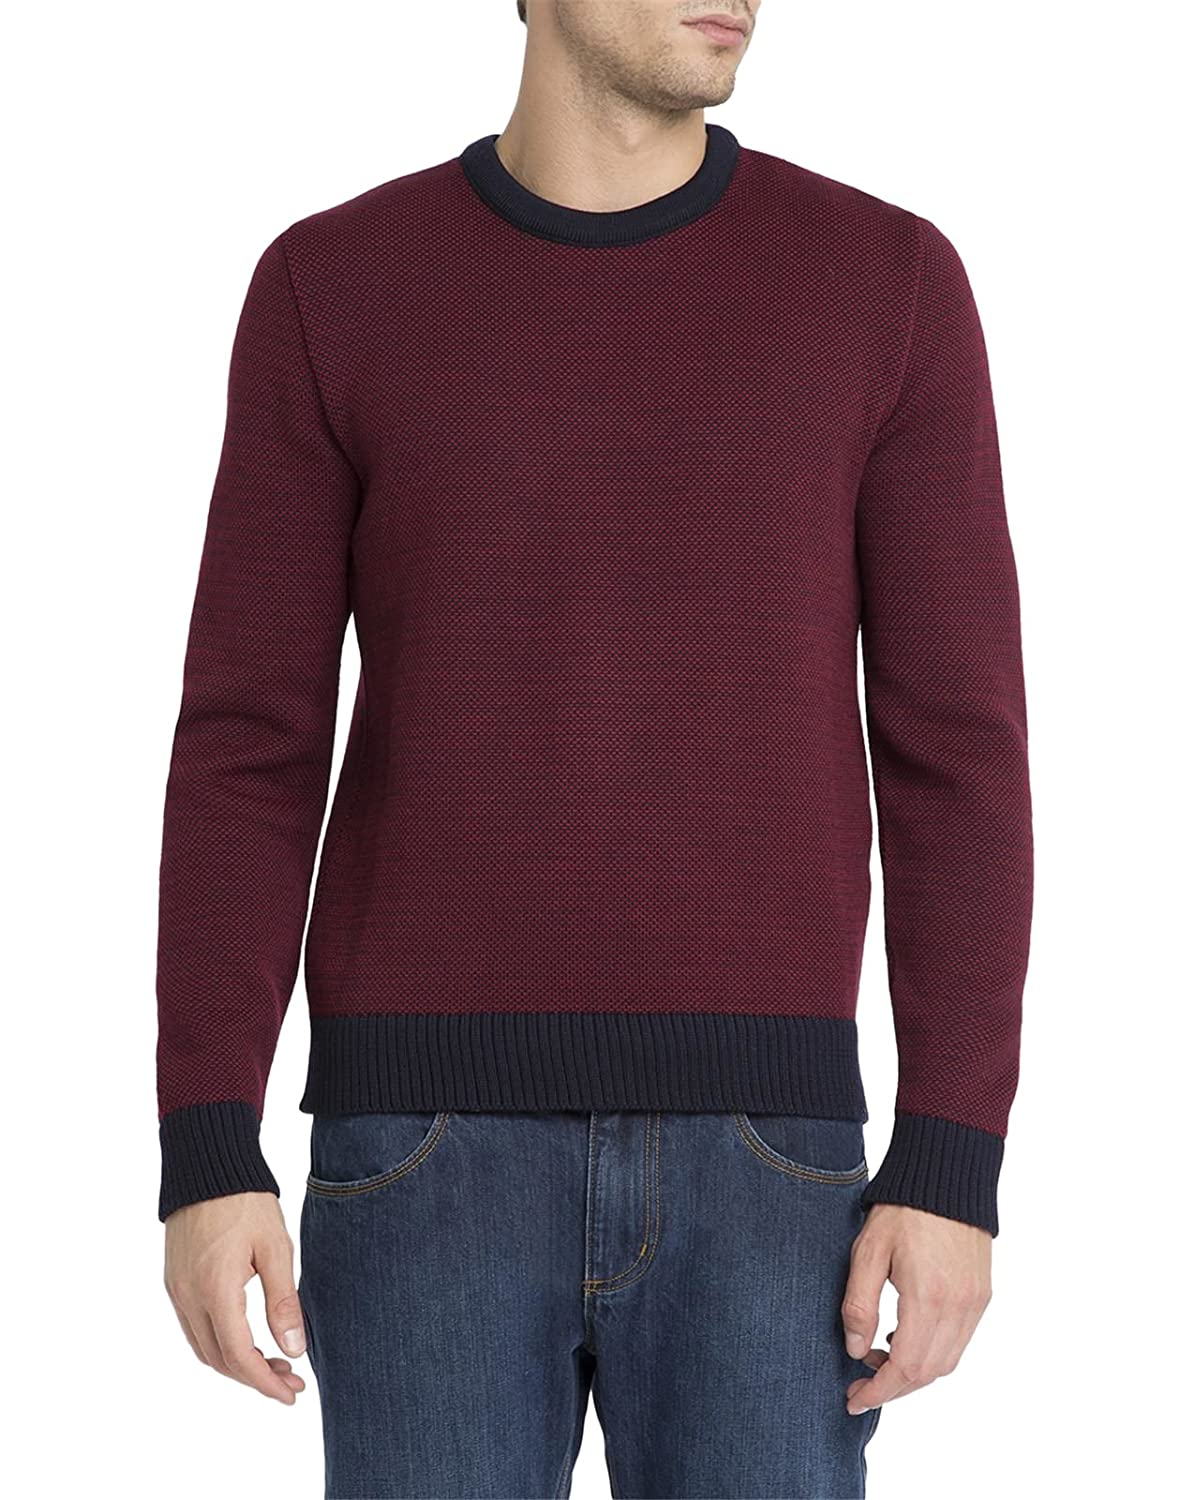 M.STUDIO - Crew-neck Sweaters - Men - Red and Navy Eustache Jacquard Round-Neck Sweater for men